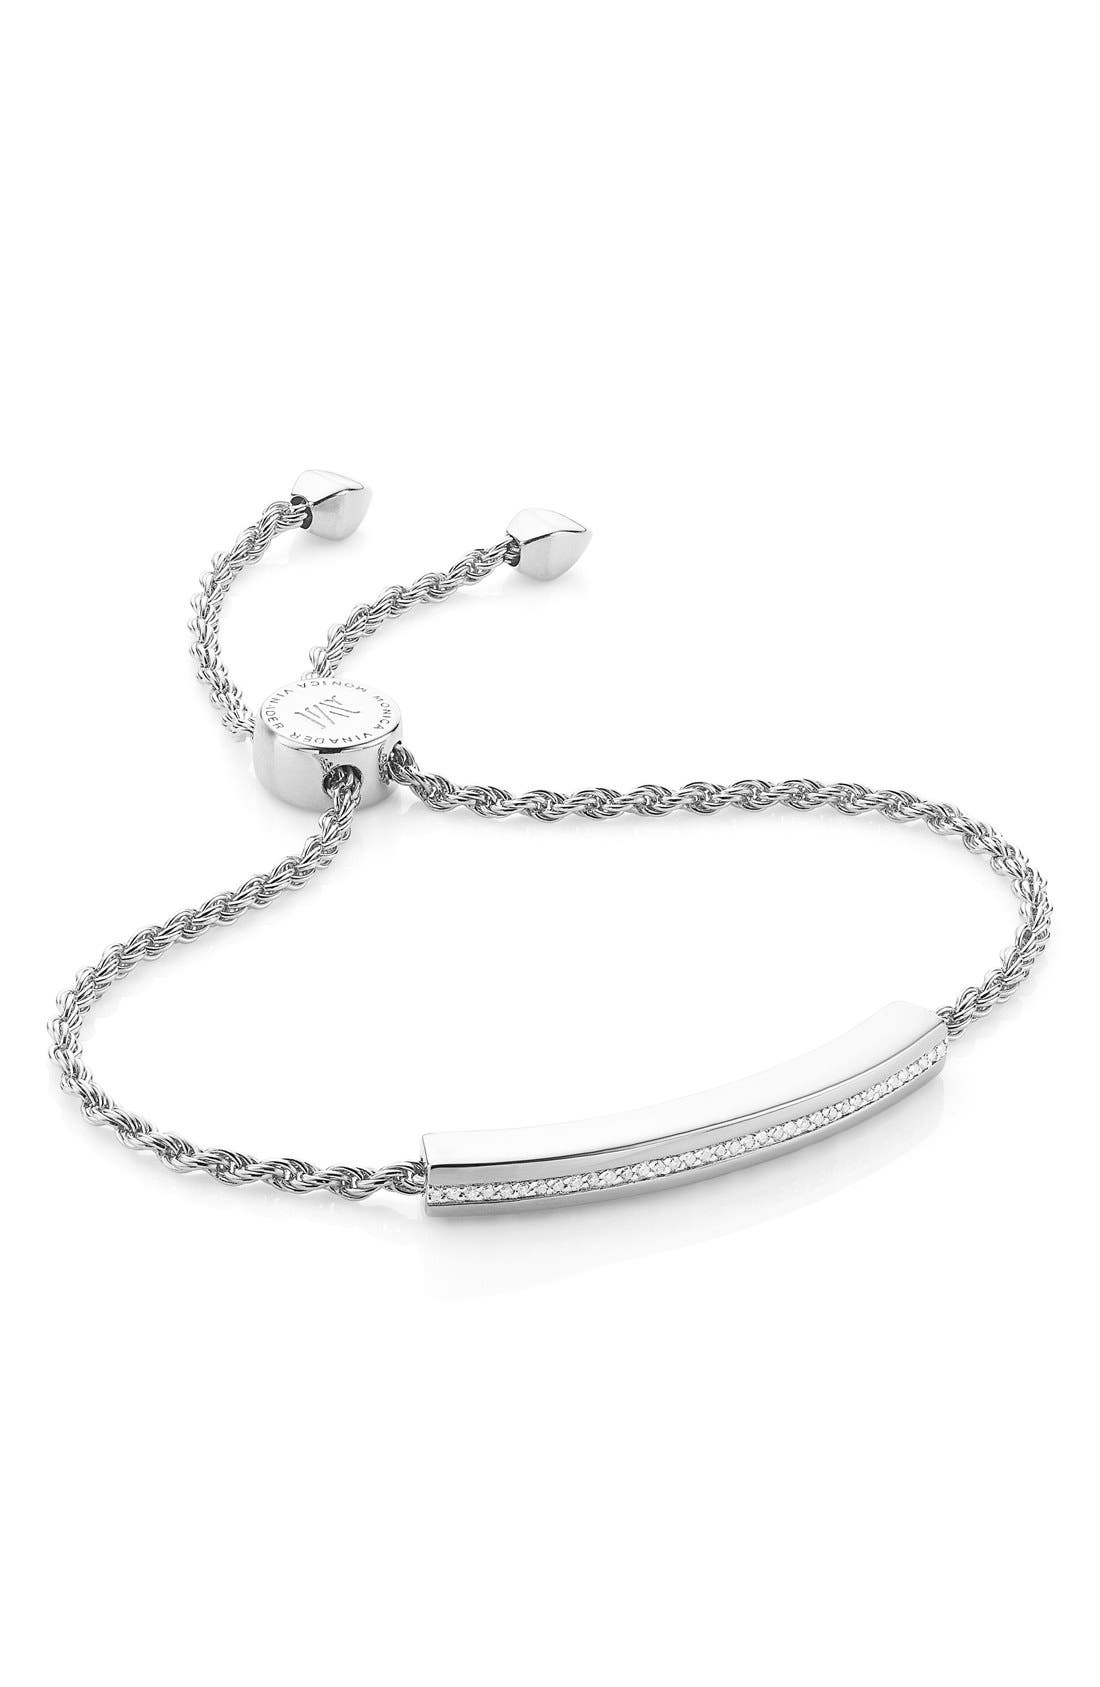 Linear Diamond Chain Bracelet,                             Main thumbnail 1, color,                             Silver/ Diamond